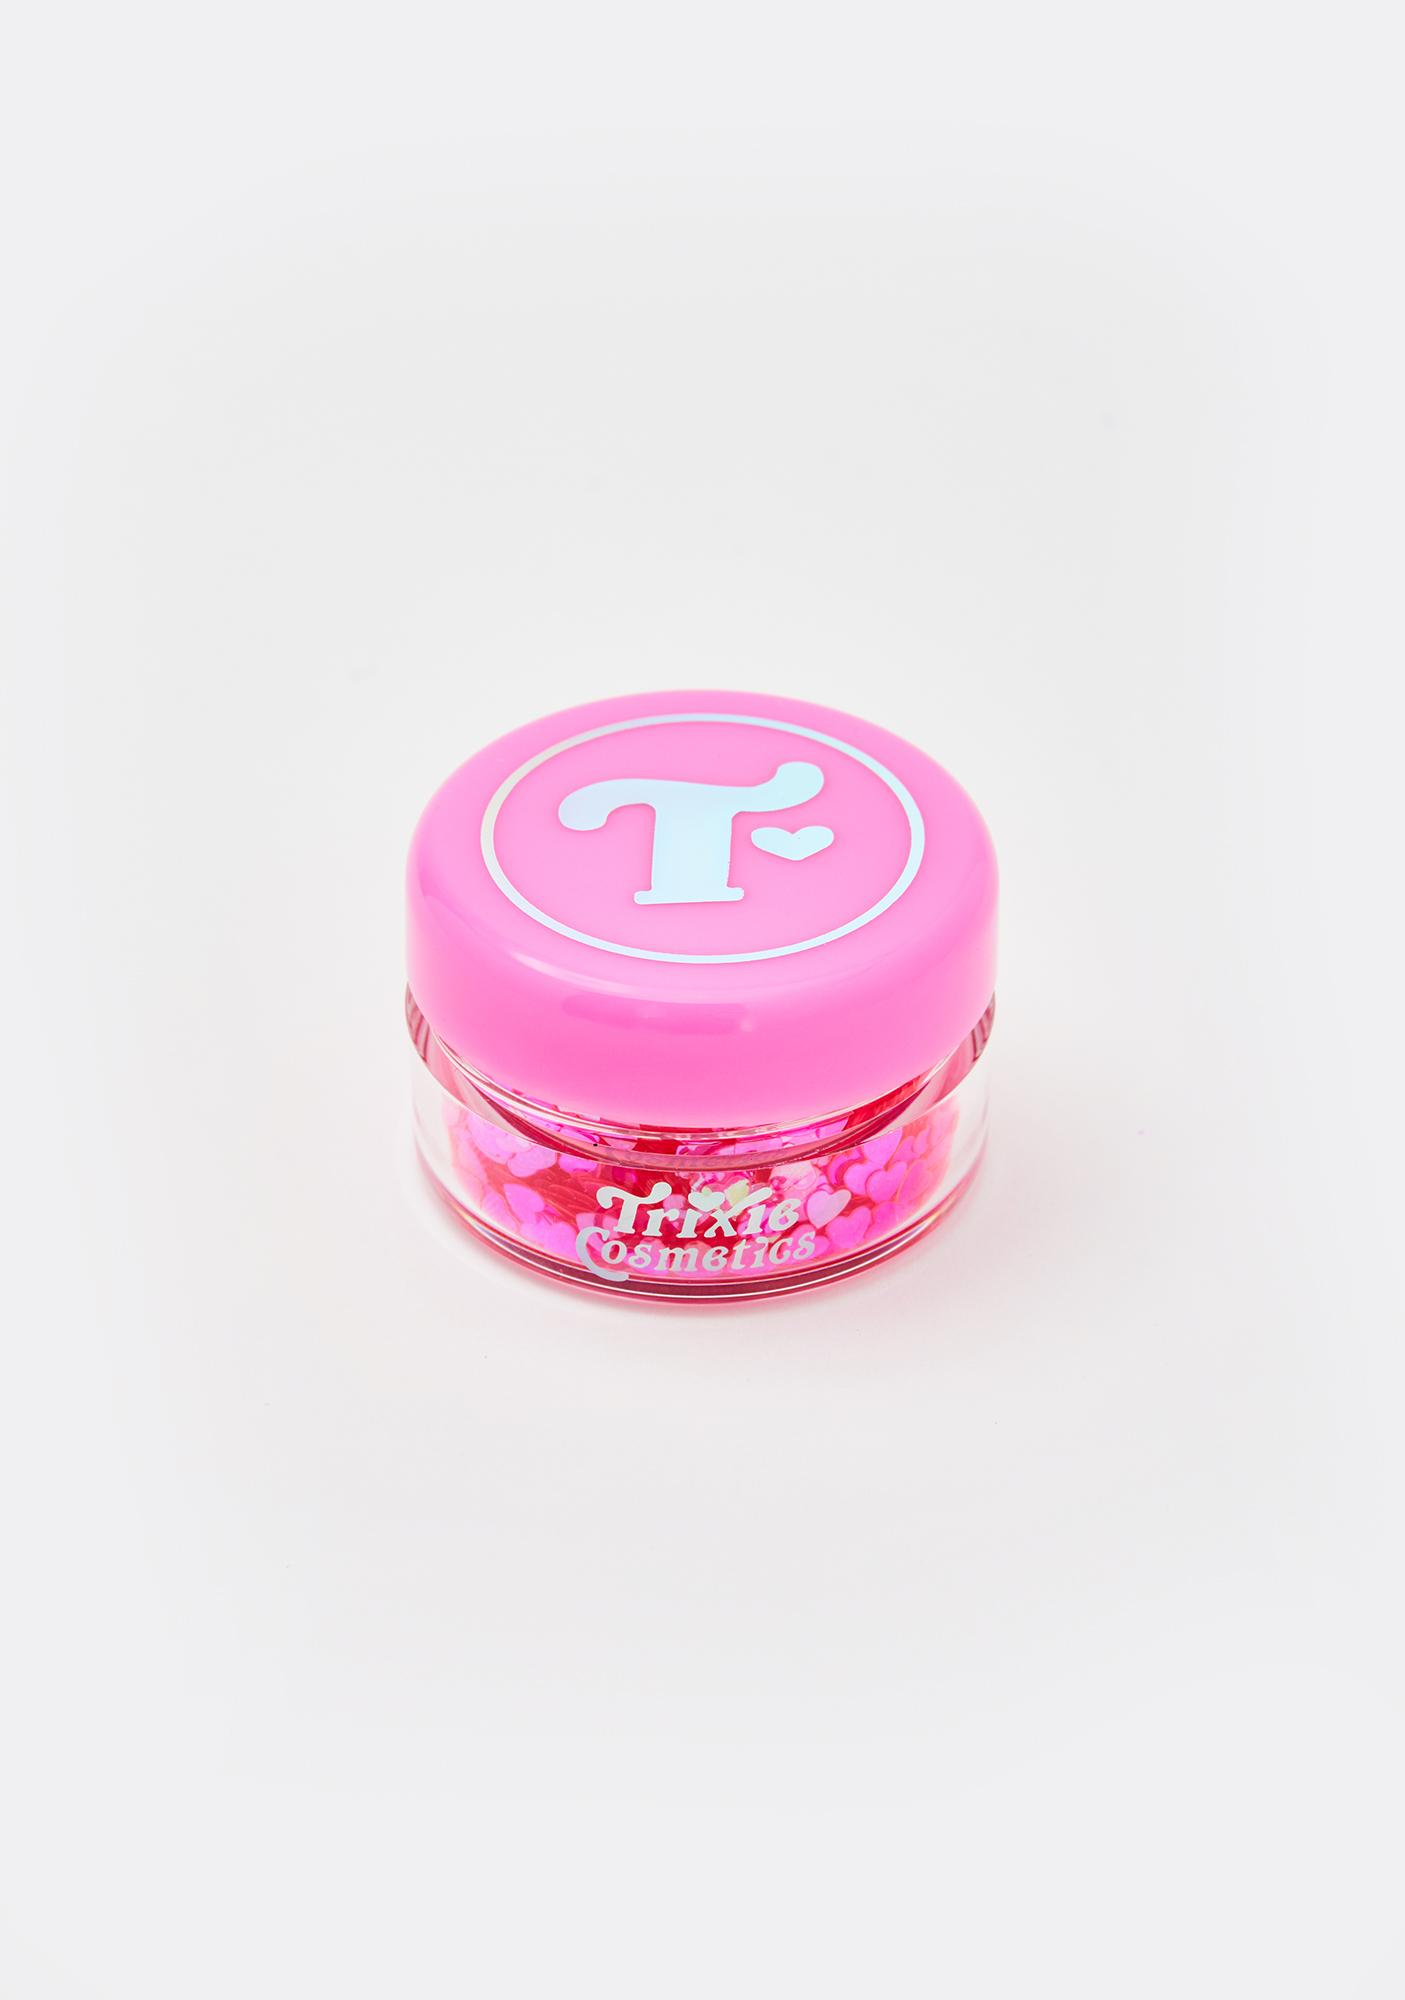 Trixie Cosmetics Love Child Sprinkles Loose Glitter